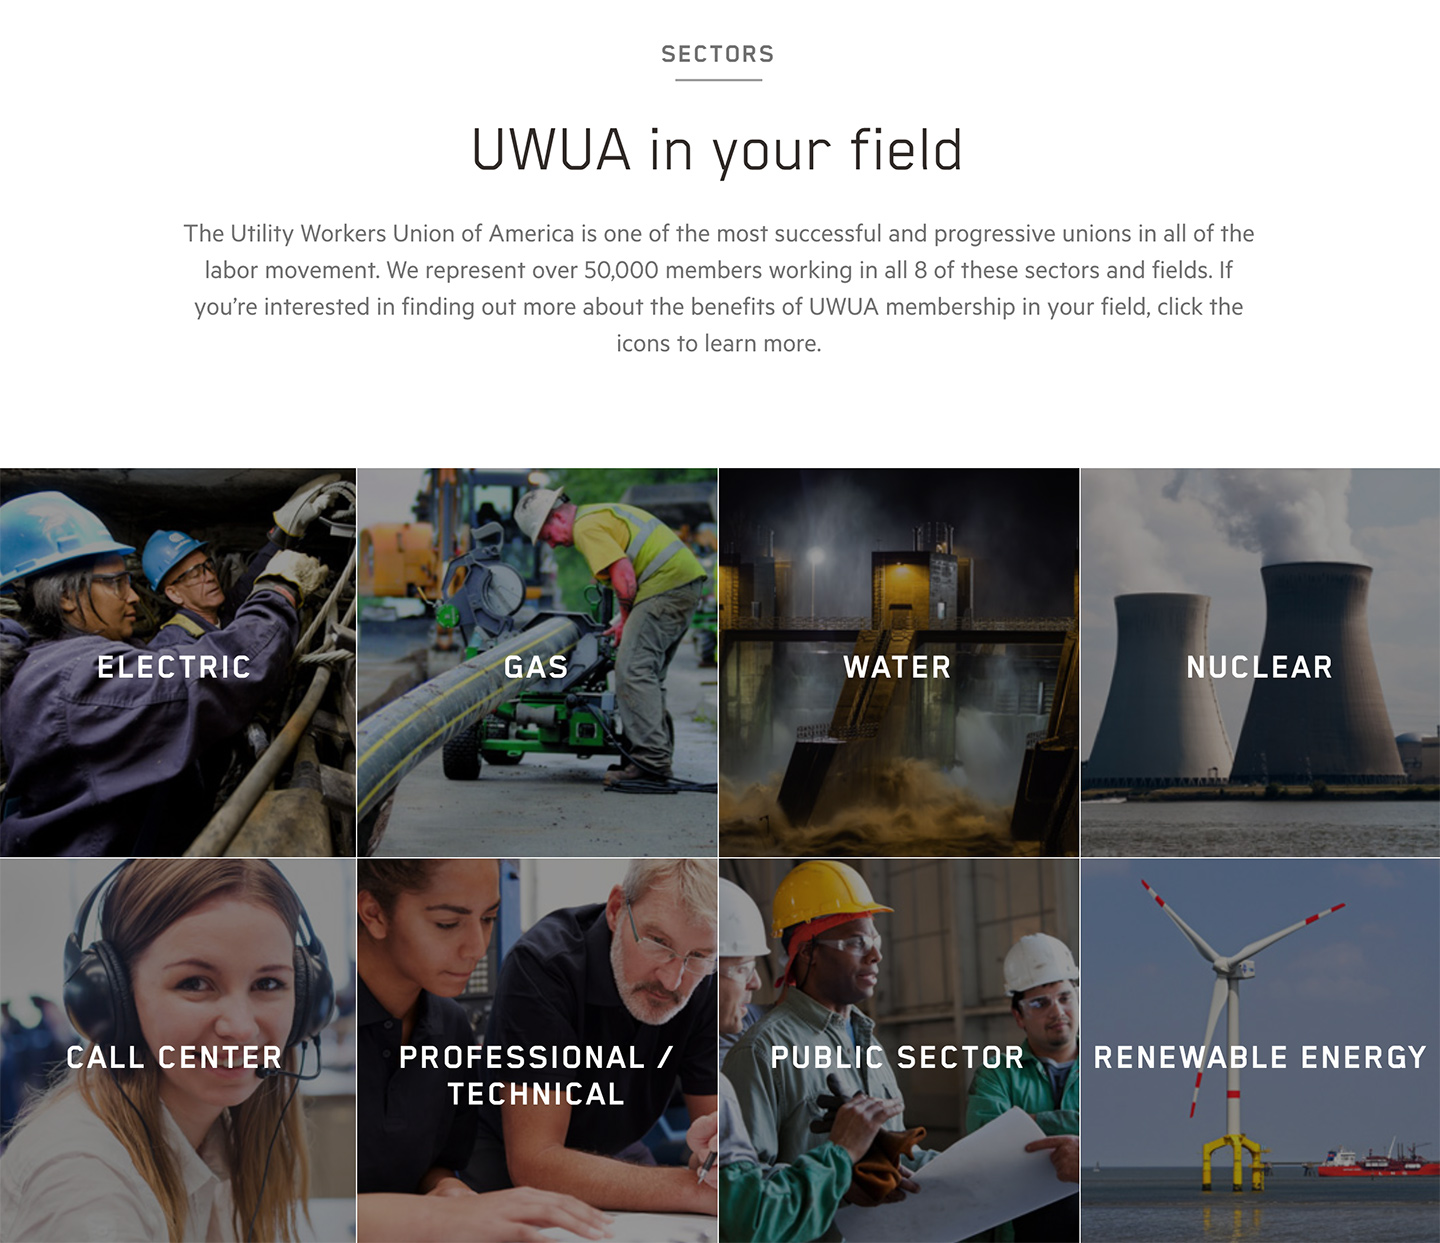 Utility Workers Union of America (UWUA): UWUA Utility Workers Union of America - Grid Overview